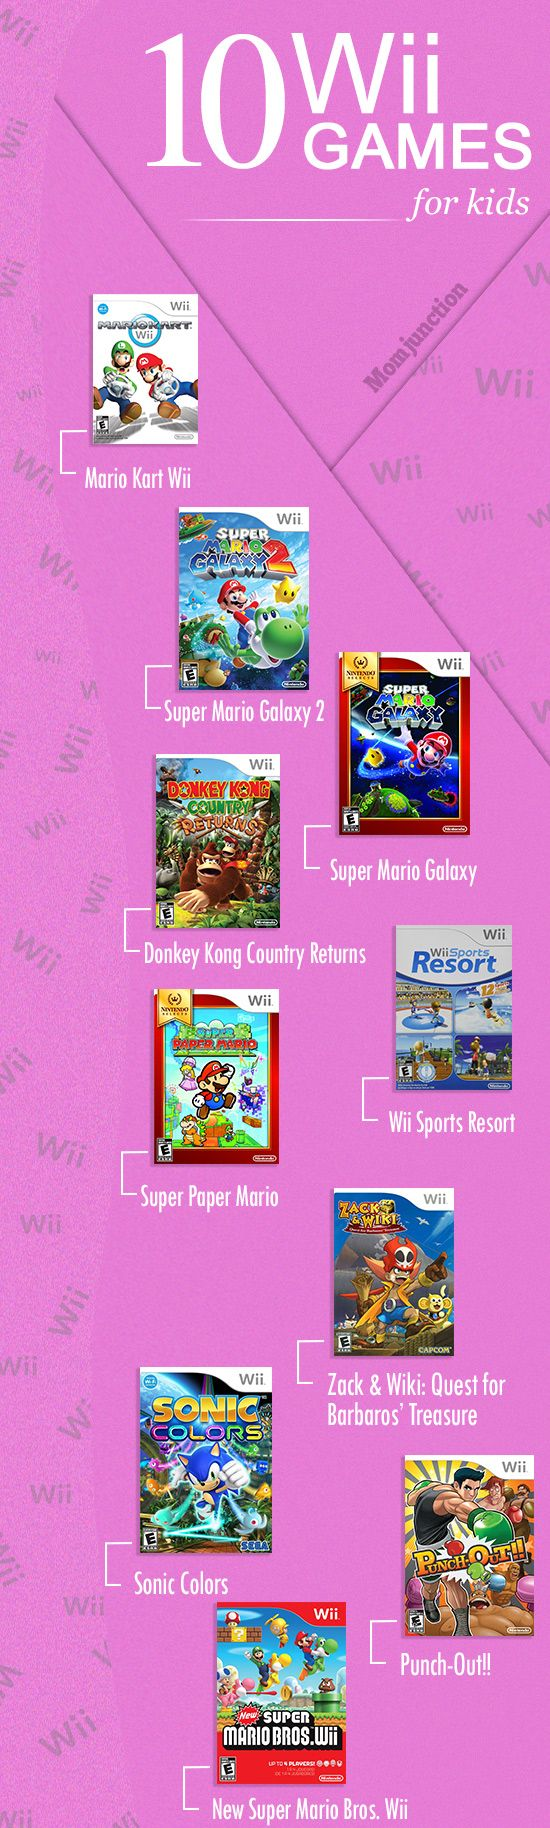 10 Best Wii Games For Kids